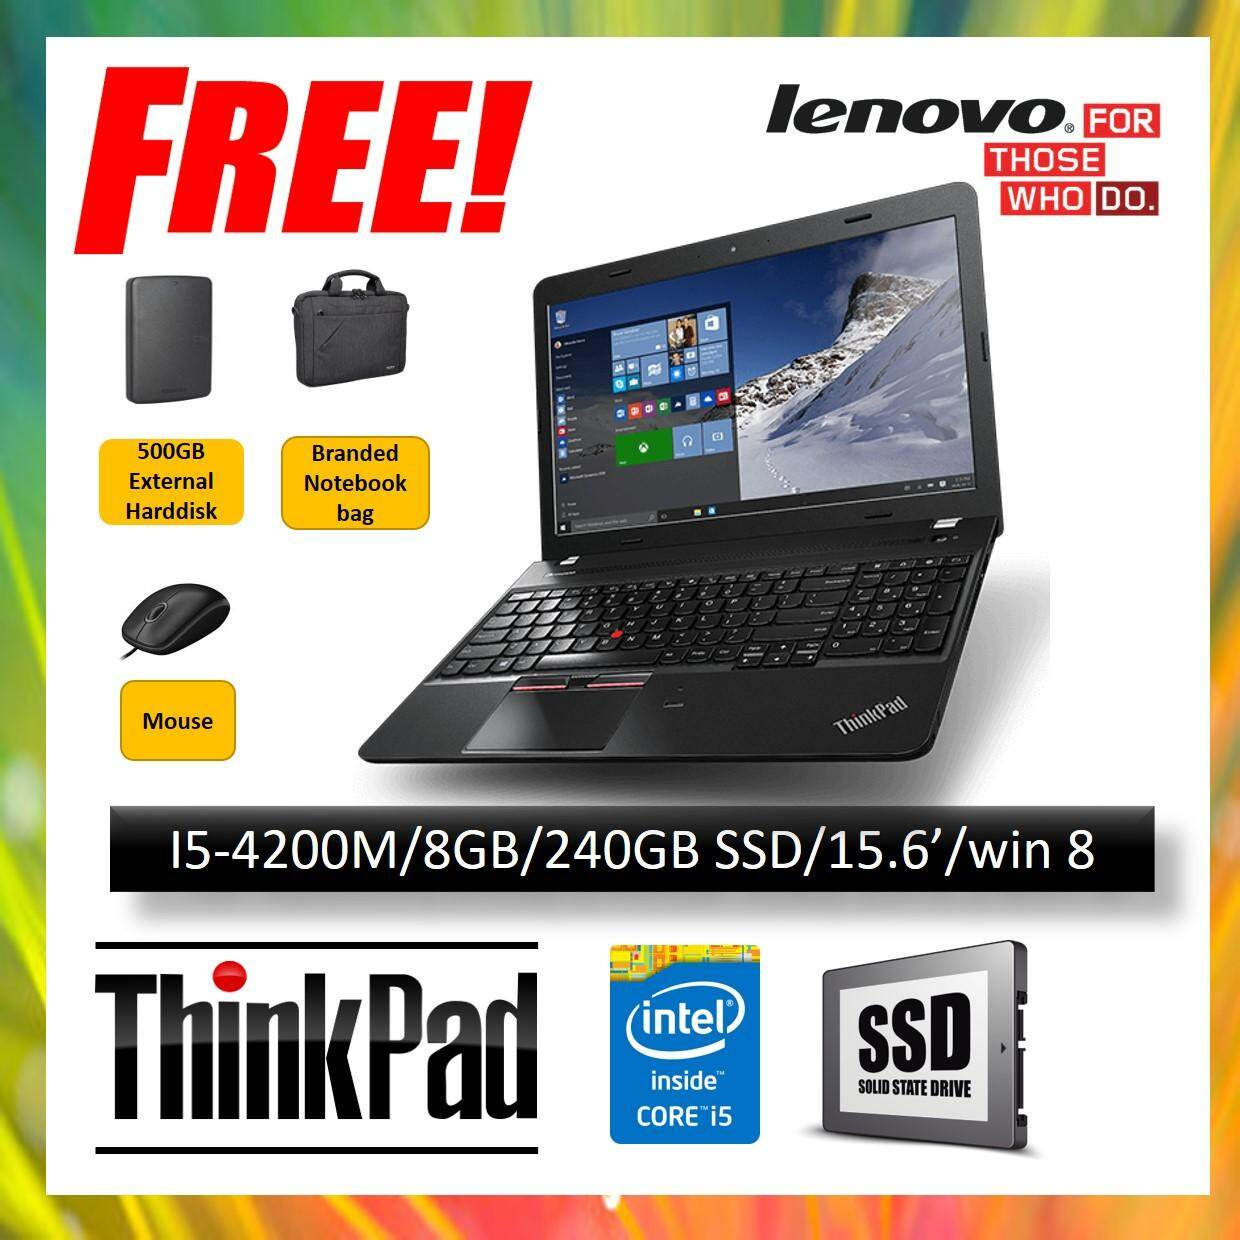 (REFURBISHED NOTEBOOK) LENOVO THINKPAD E540 LAPTOP / I5-4200M CPU / 8GB RAM / 240GB SSD HARD DISK / 15.6 INCH / WINDOW 8.1 Malaysia